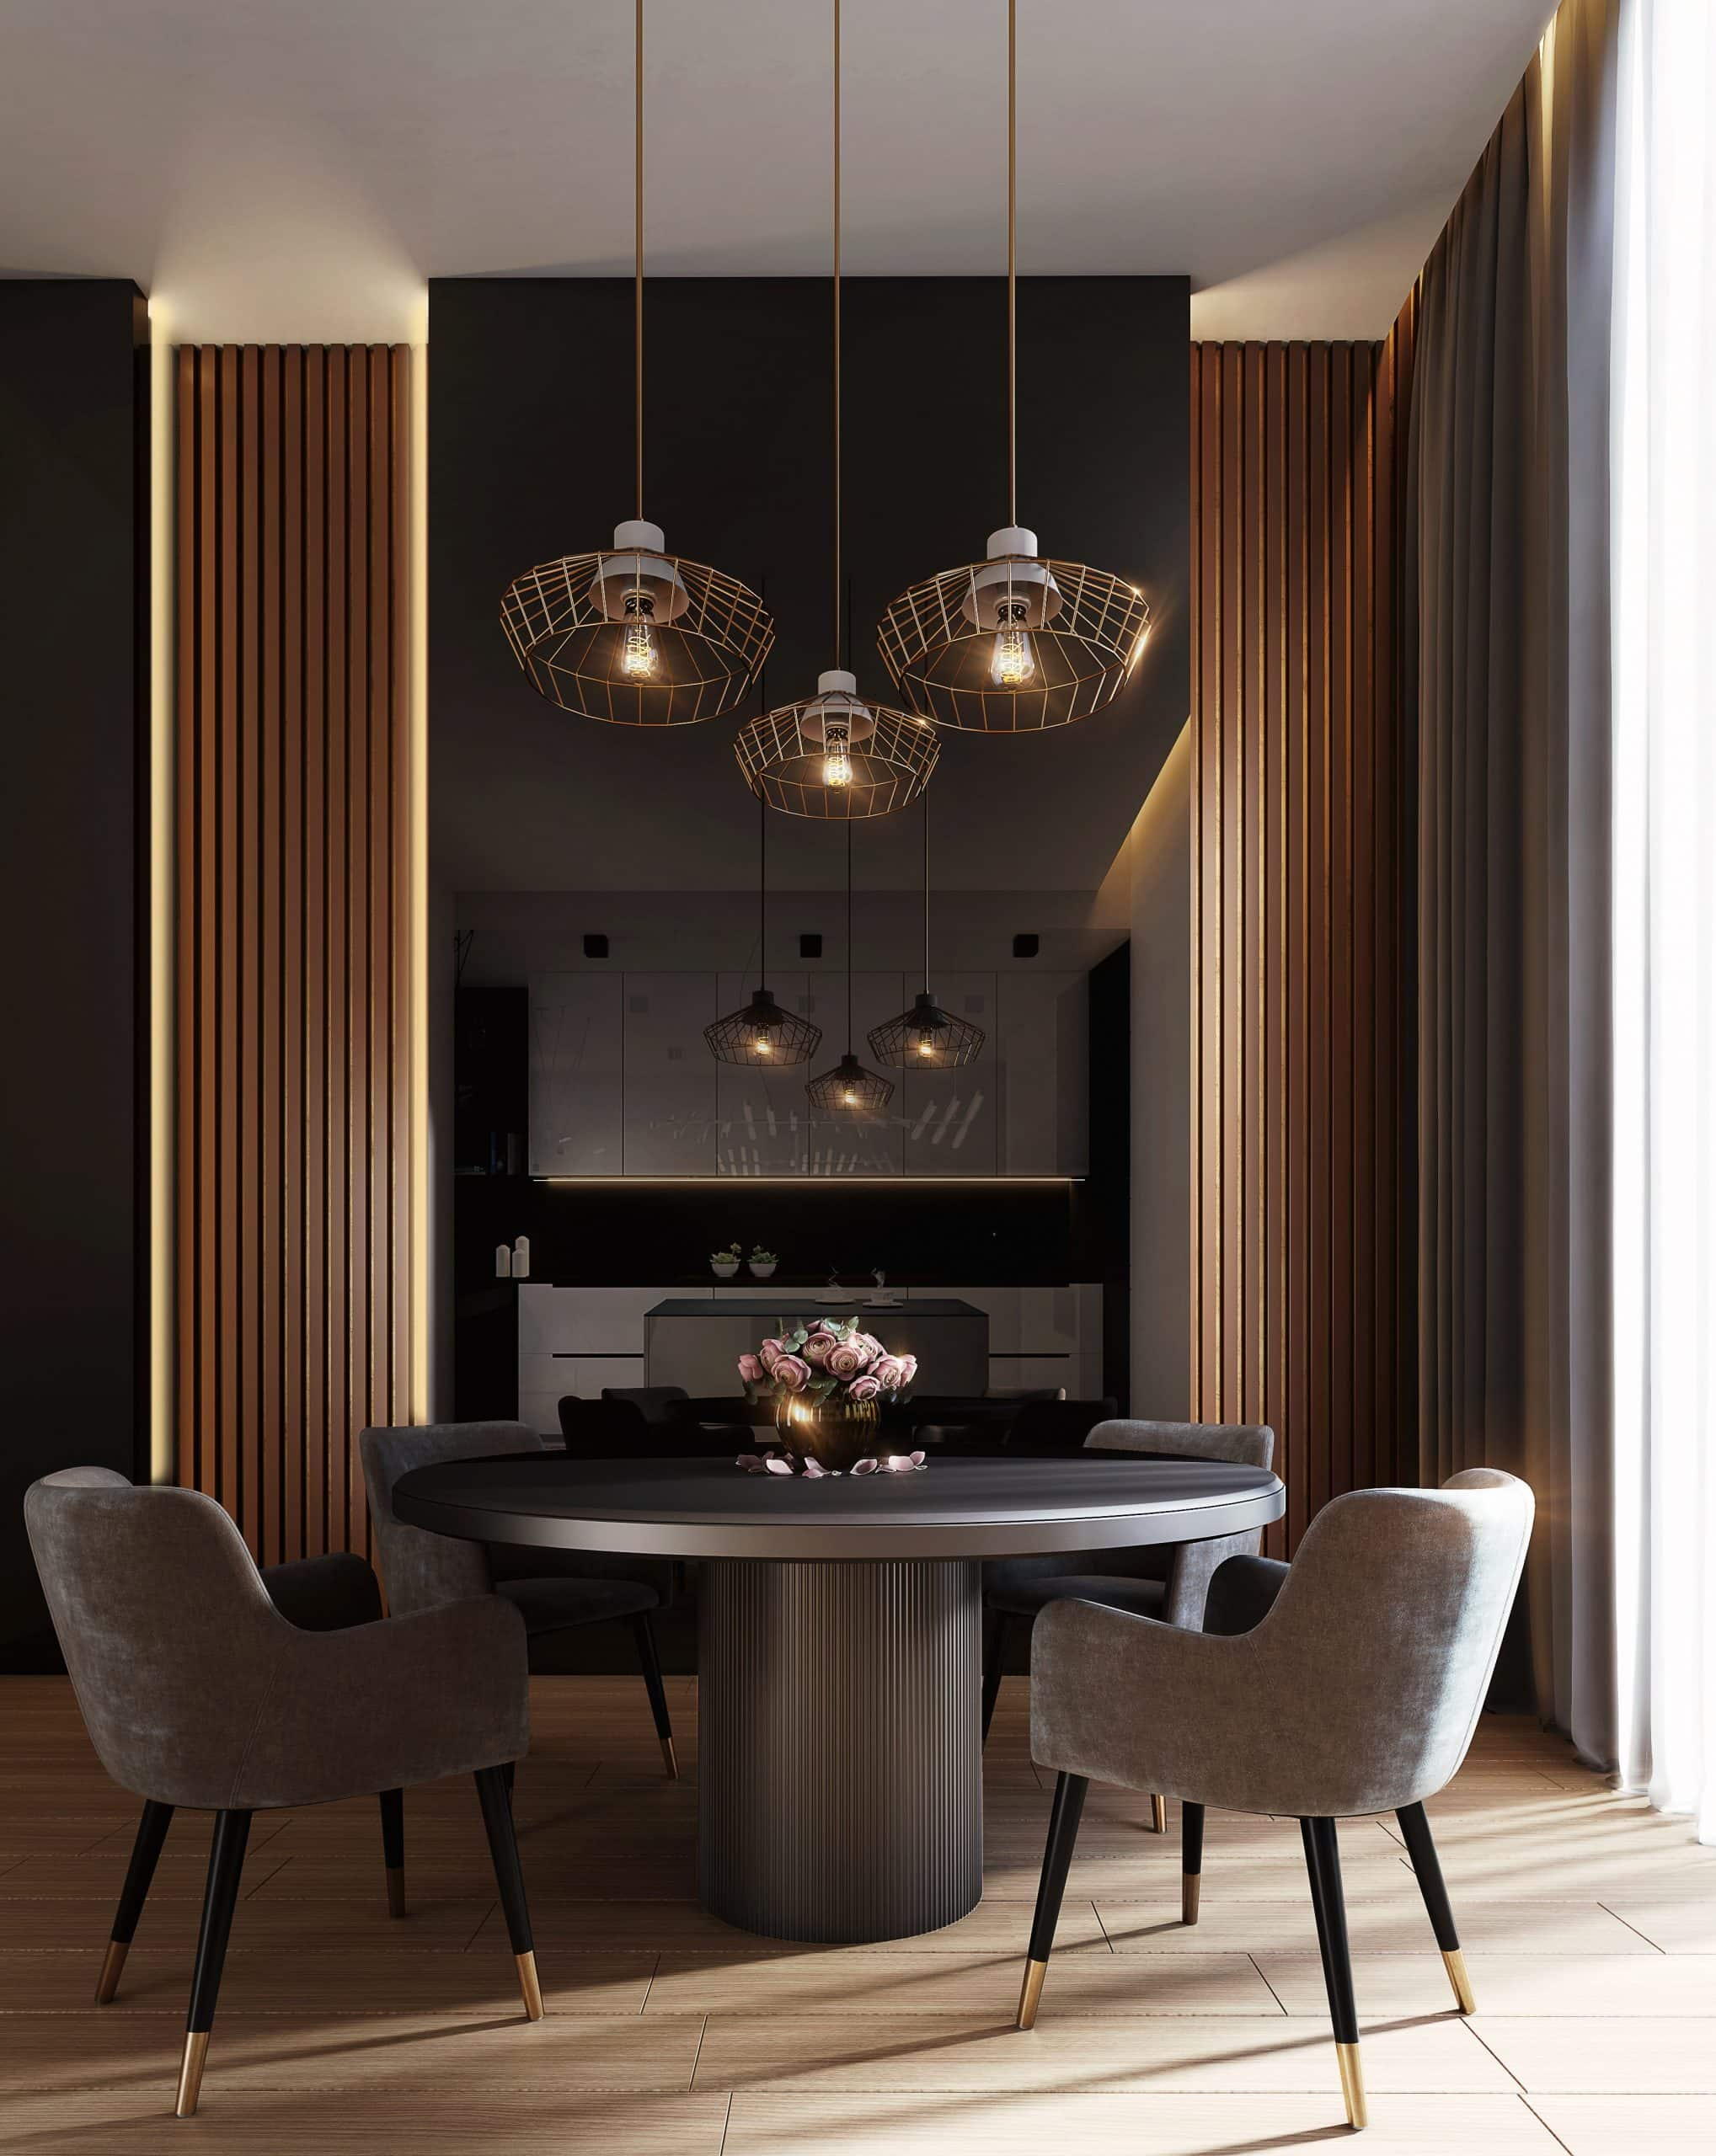 4 Must-Have Features of a Luxury Home